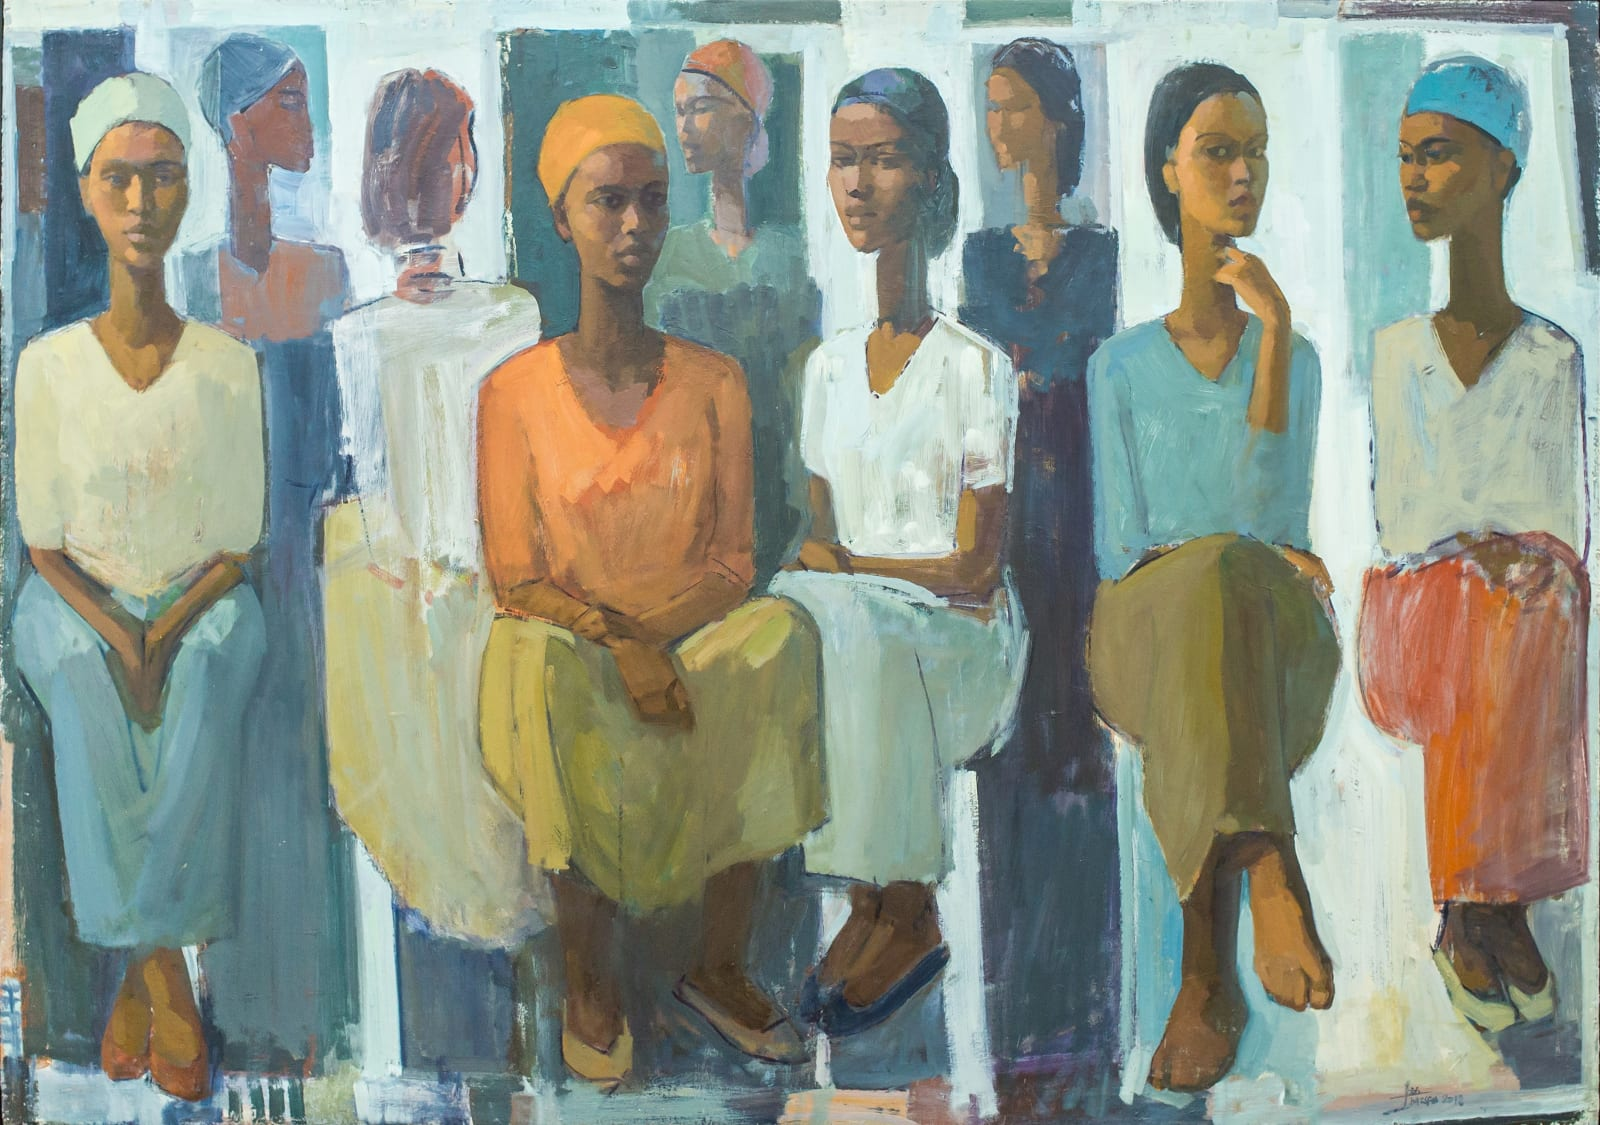 Tadesse Mesfin, Pillars of Life: Market Day, 2018